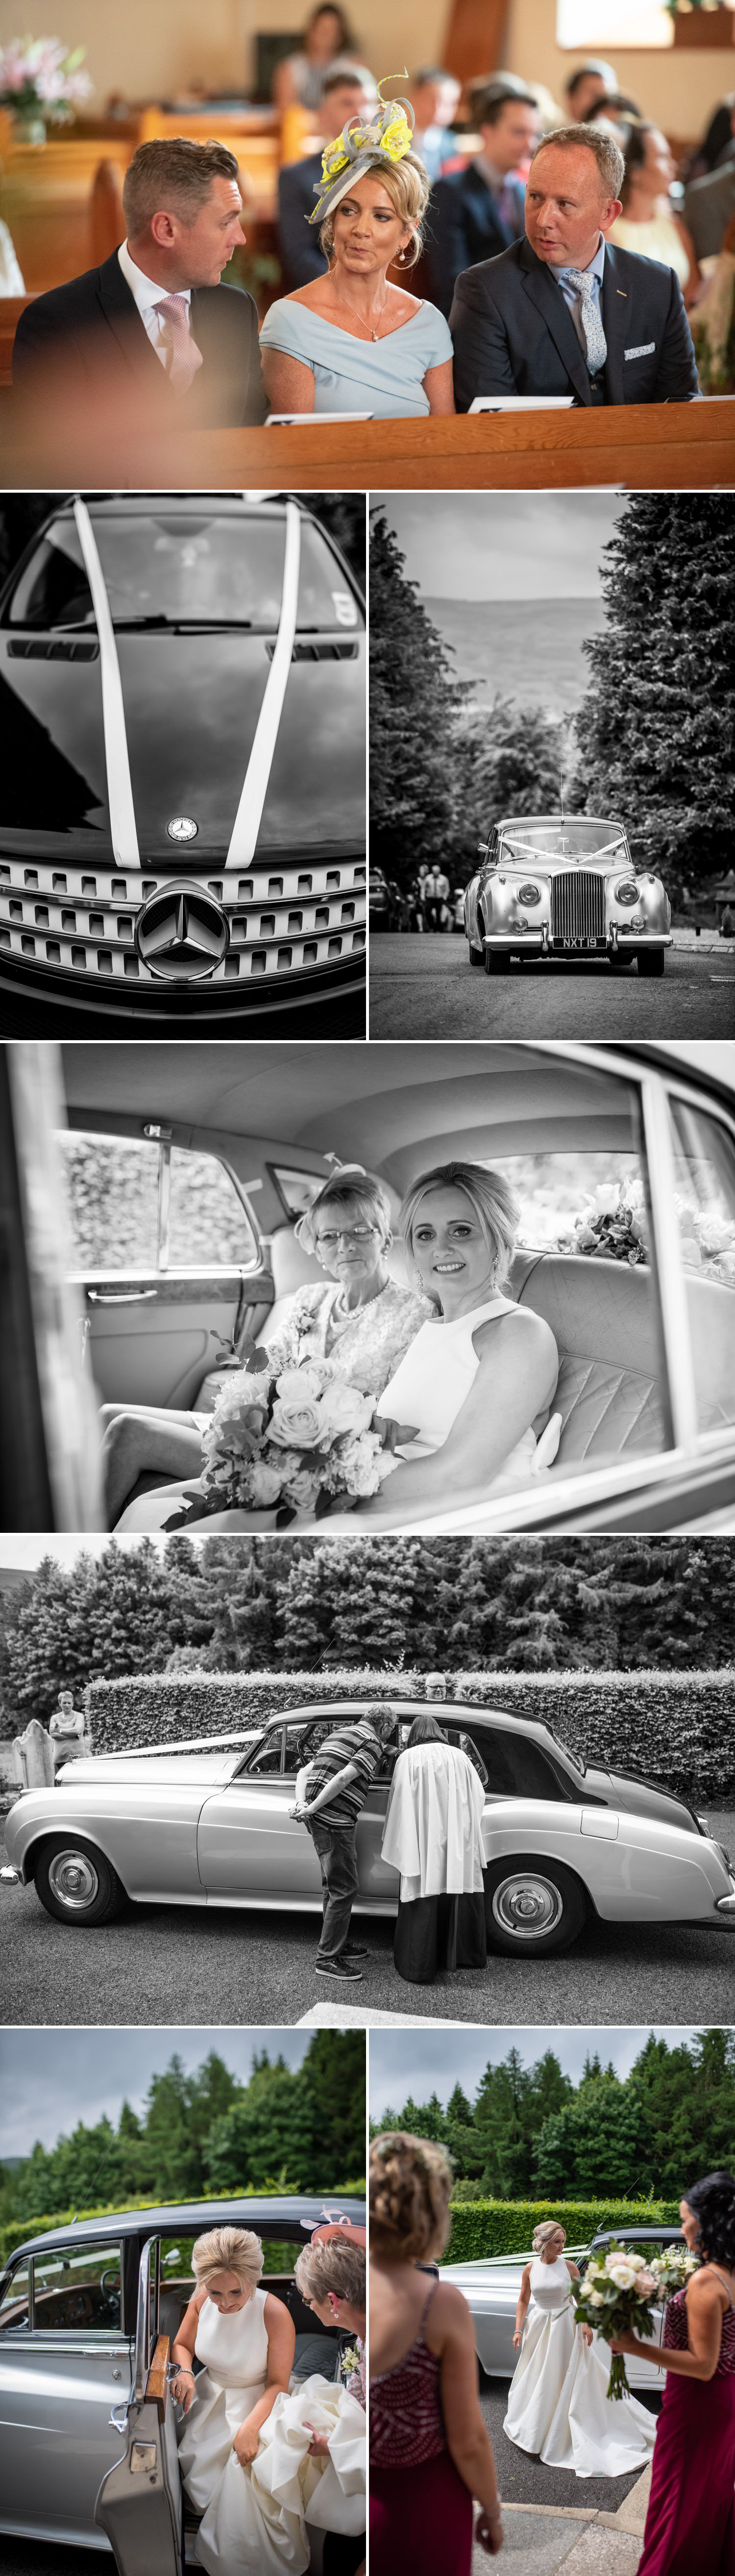 best wedding photographers northern ireland 05.jpg